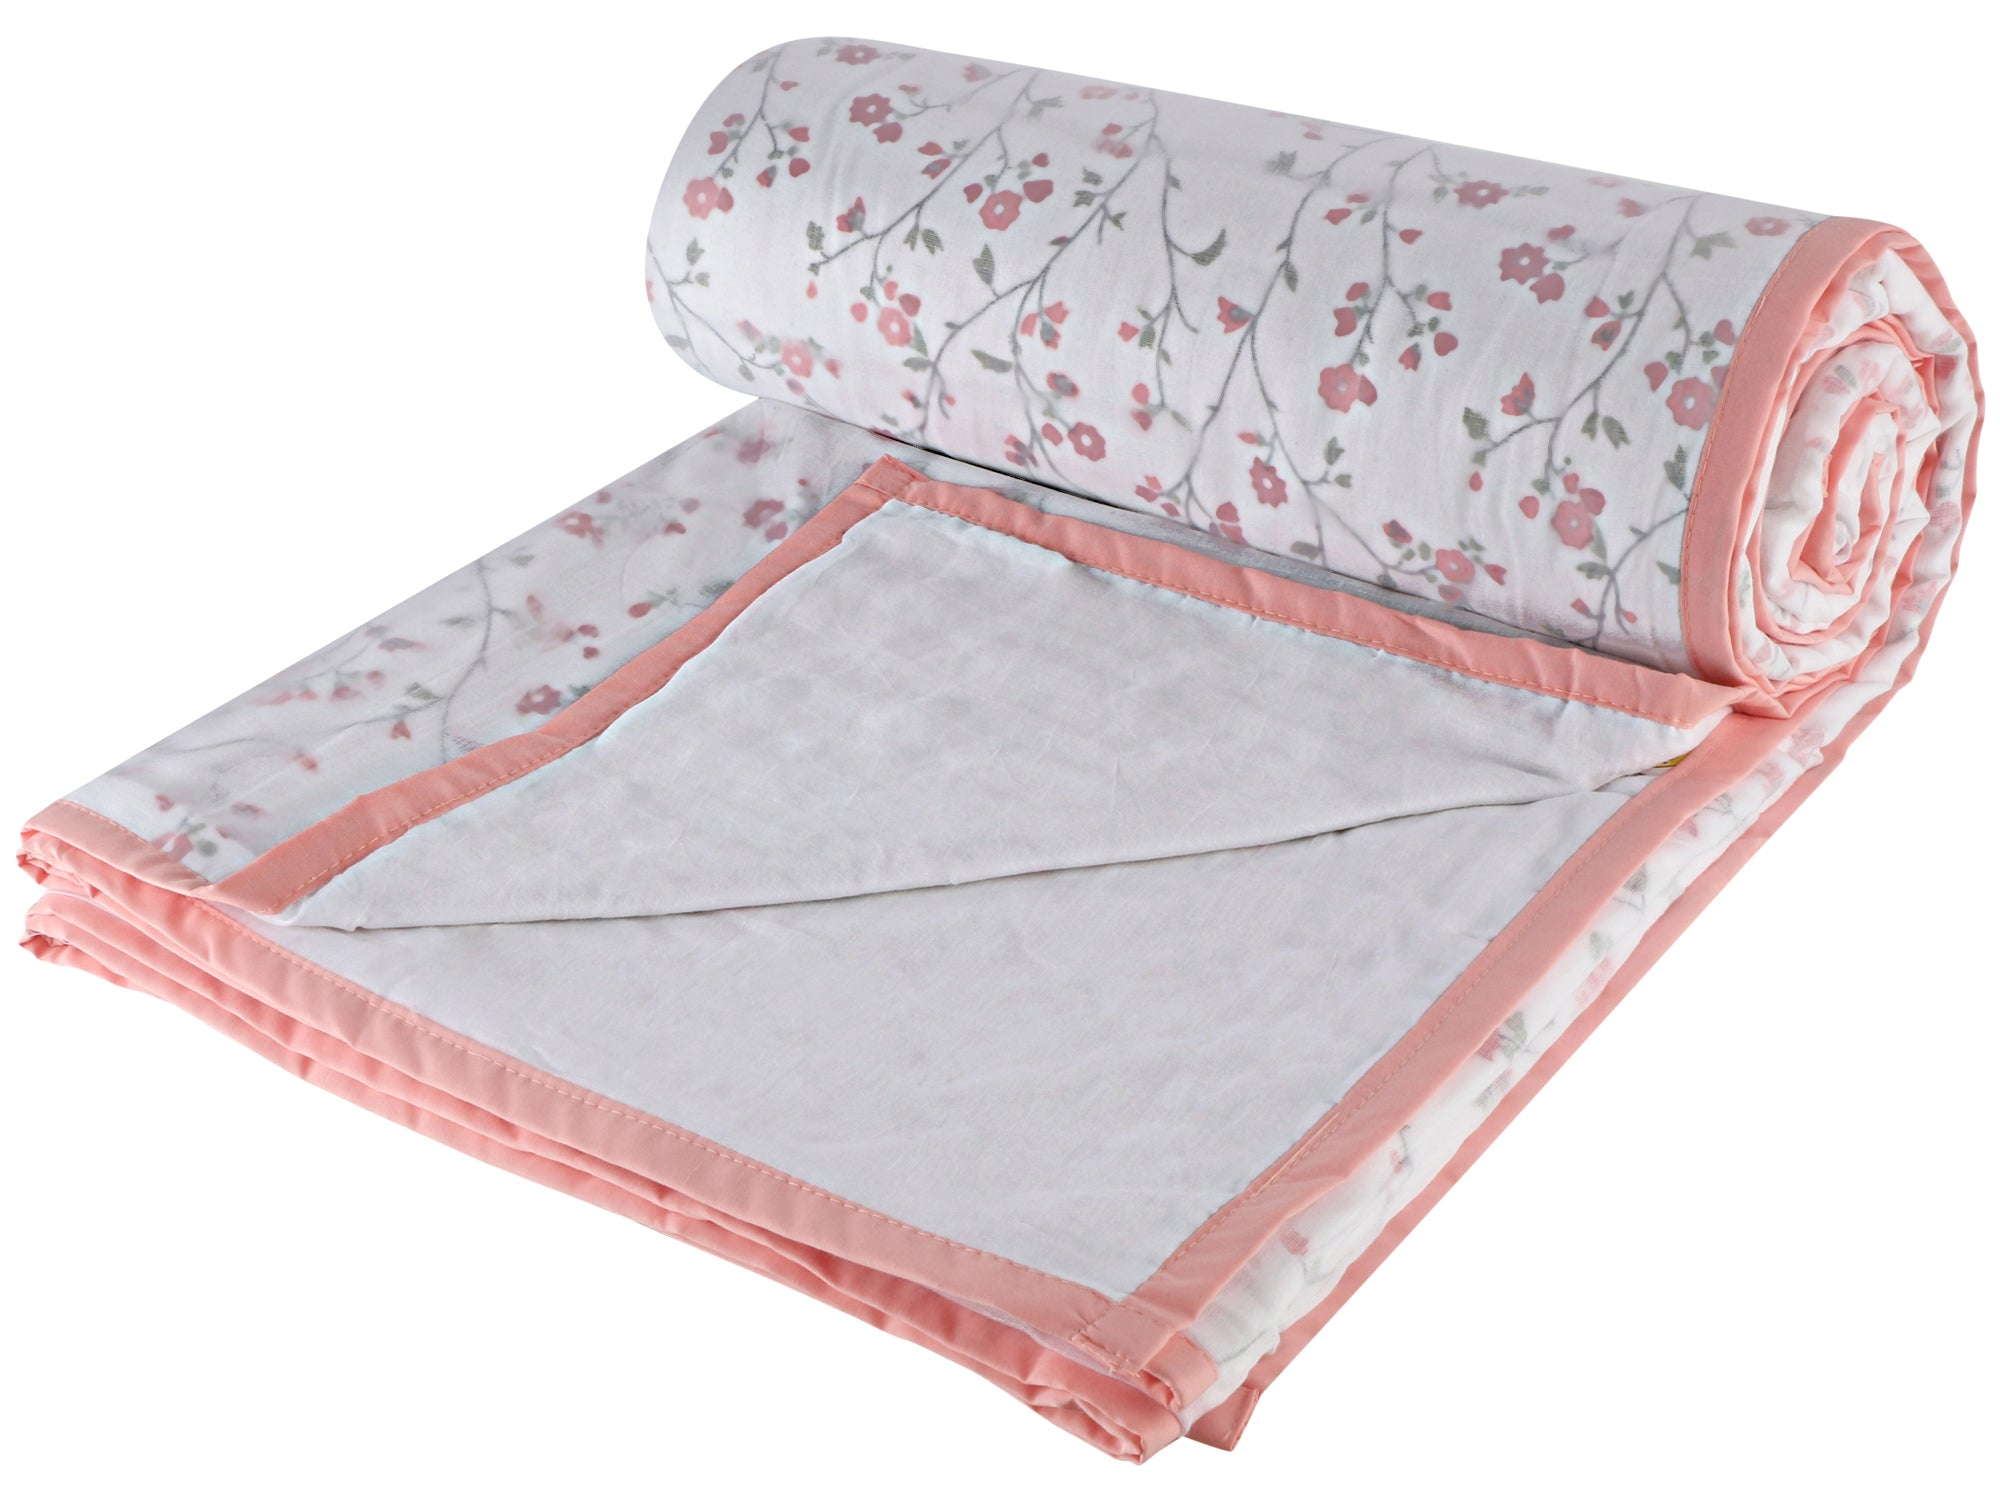 Pink Floral Cotton Single Dohar - VI (88 x 58 inches)